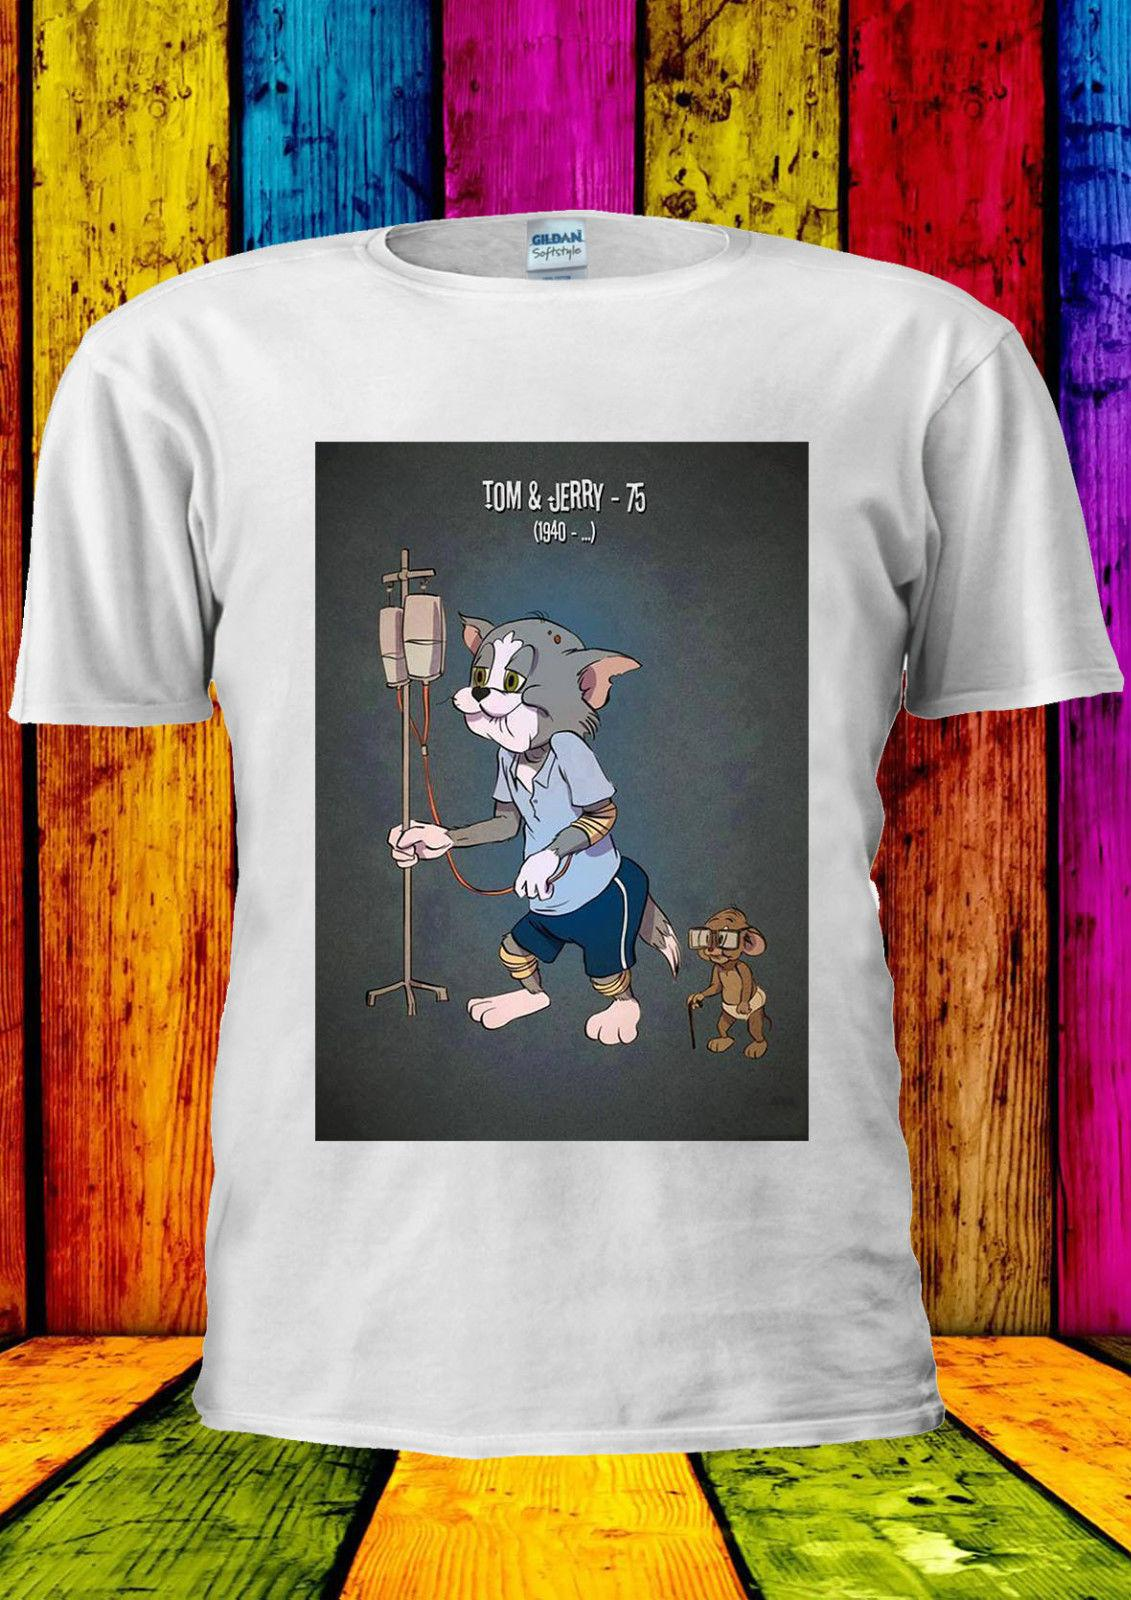 a3f0ca85daa Tom And Jerry Elderly Hospital Old T Shirt Vest Tank Top Men Women Unisex  Cartoon T Shirt Men Unisex New Fashion Tshirt One Day Only T Shirts Limited  T ...